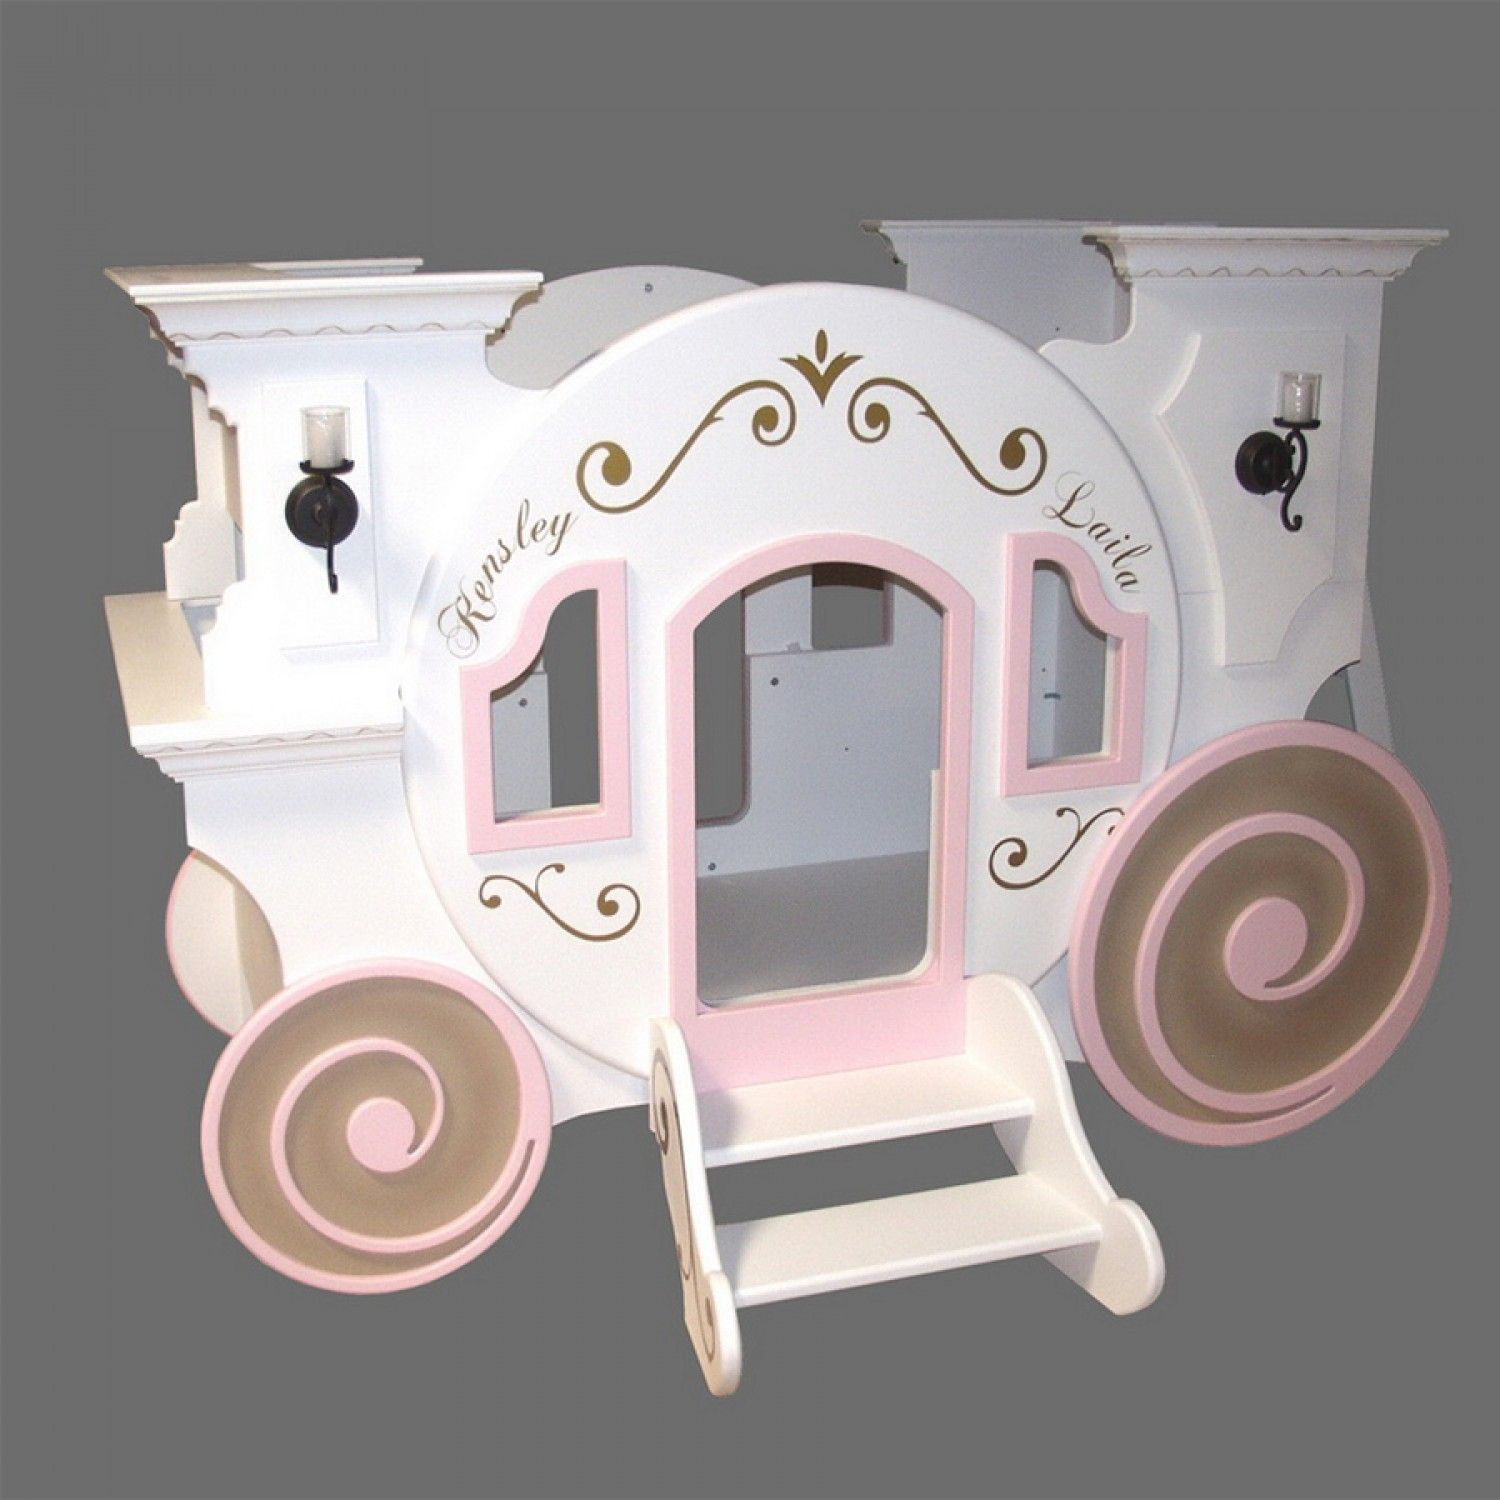 Princess Bed Blueprints Cinderella Princess Carriage Bunk Bed By Tanglewood Design For